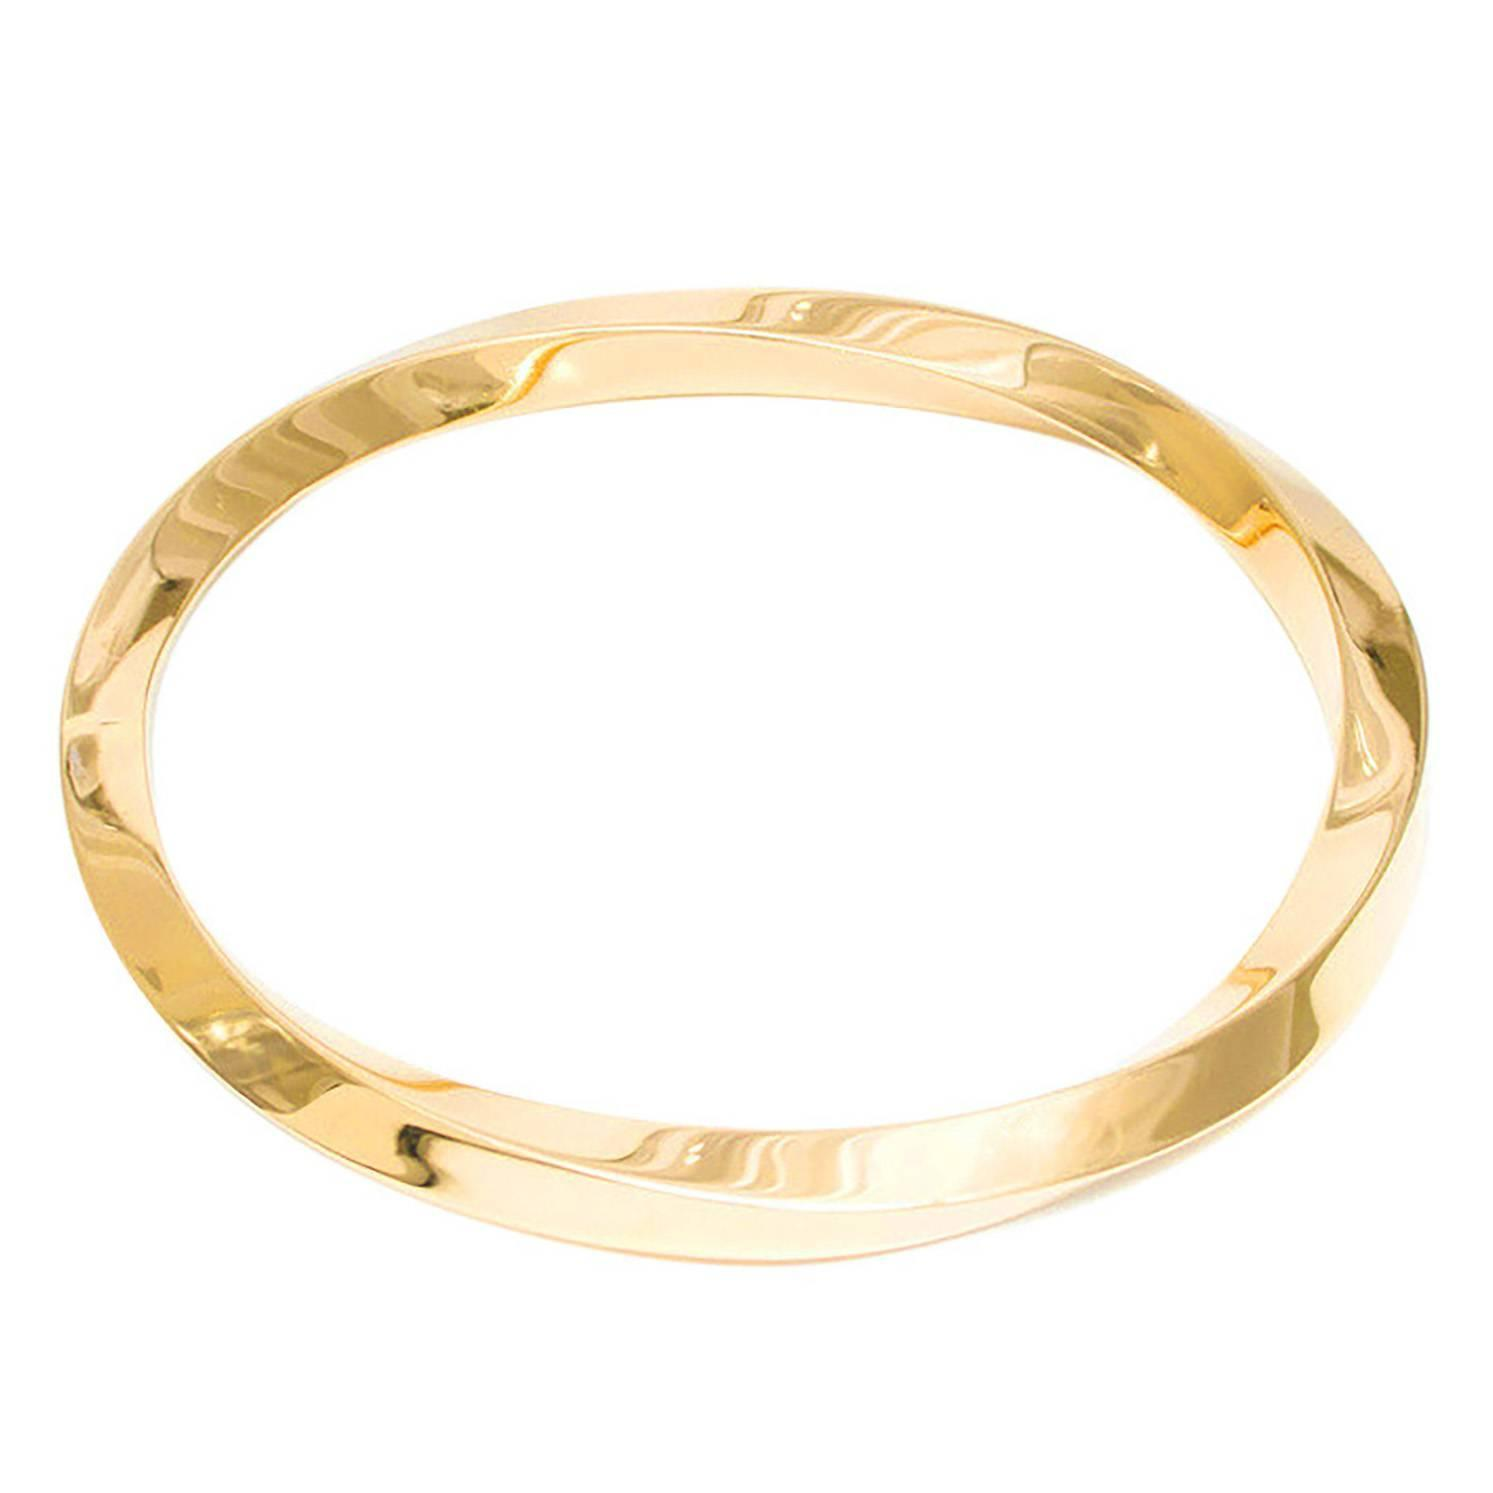 bangles k bracelet solid ecuatwitt bracelets gold day bangle